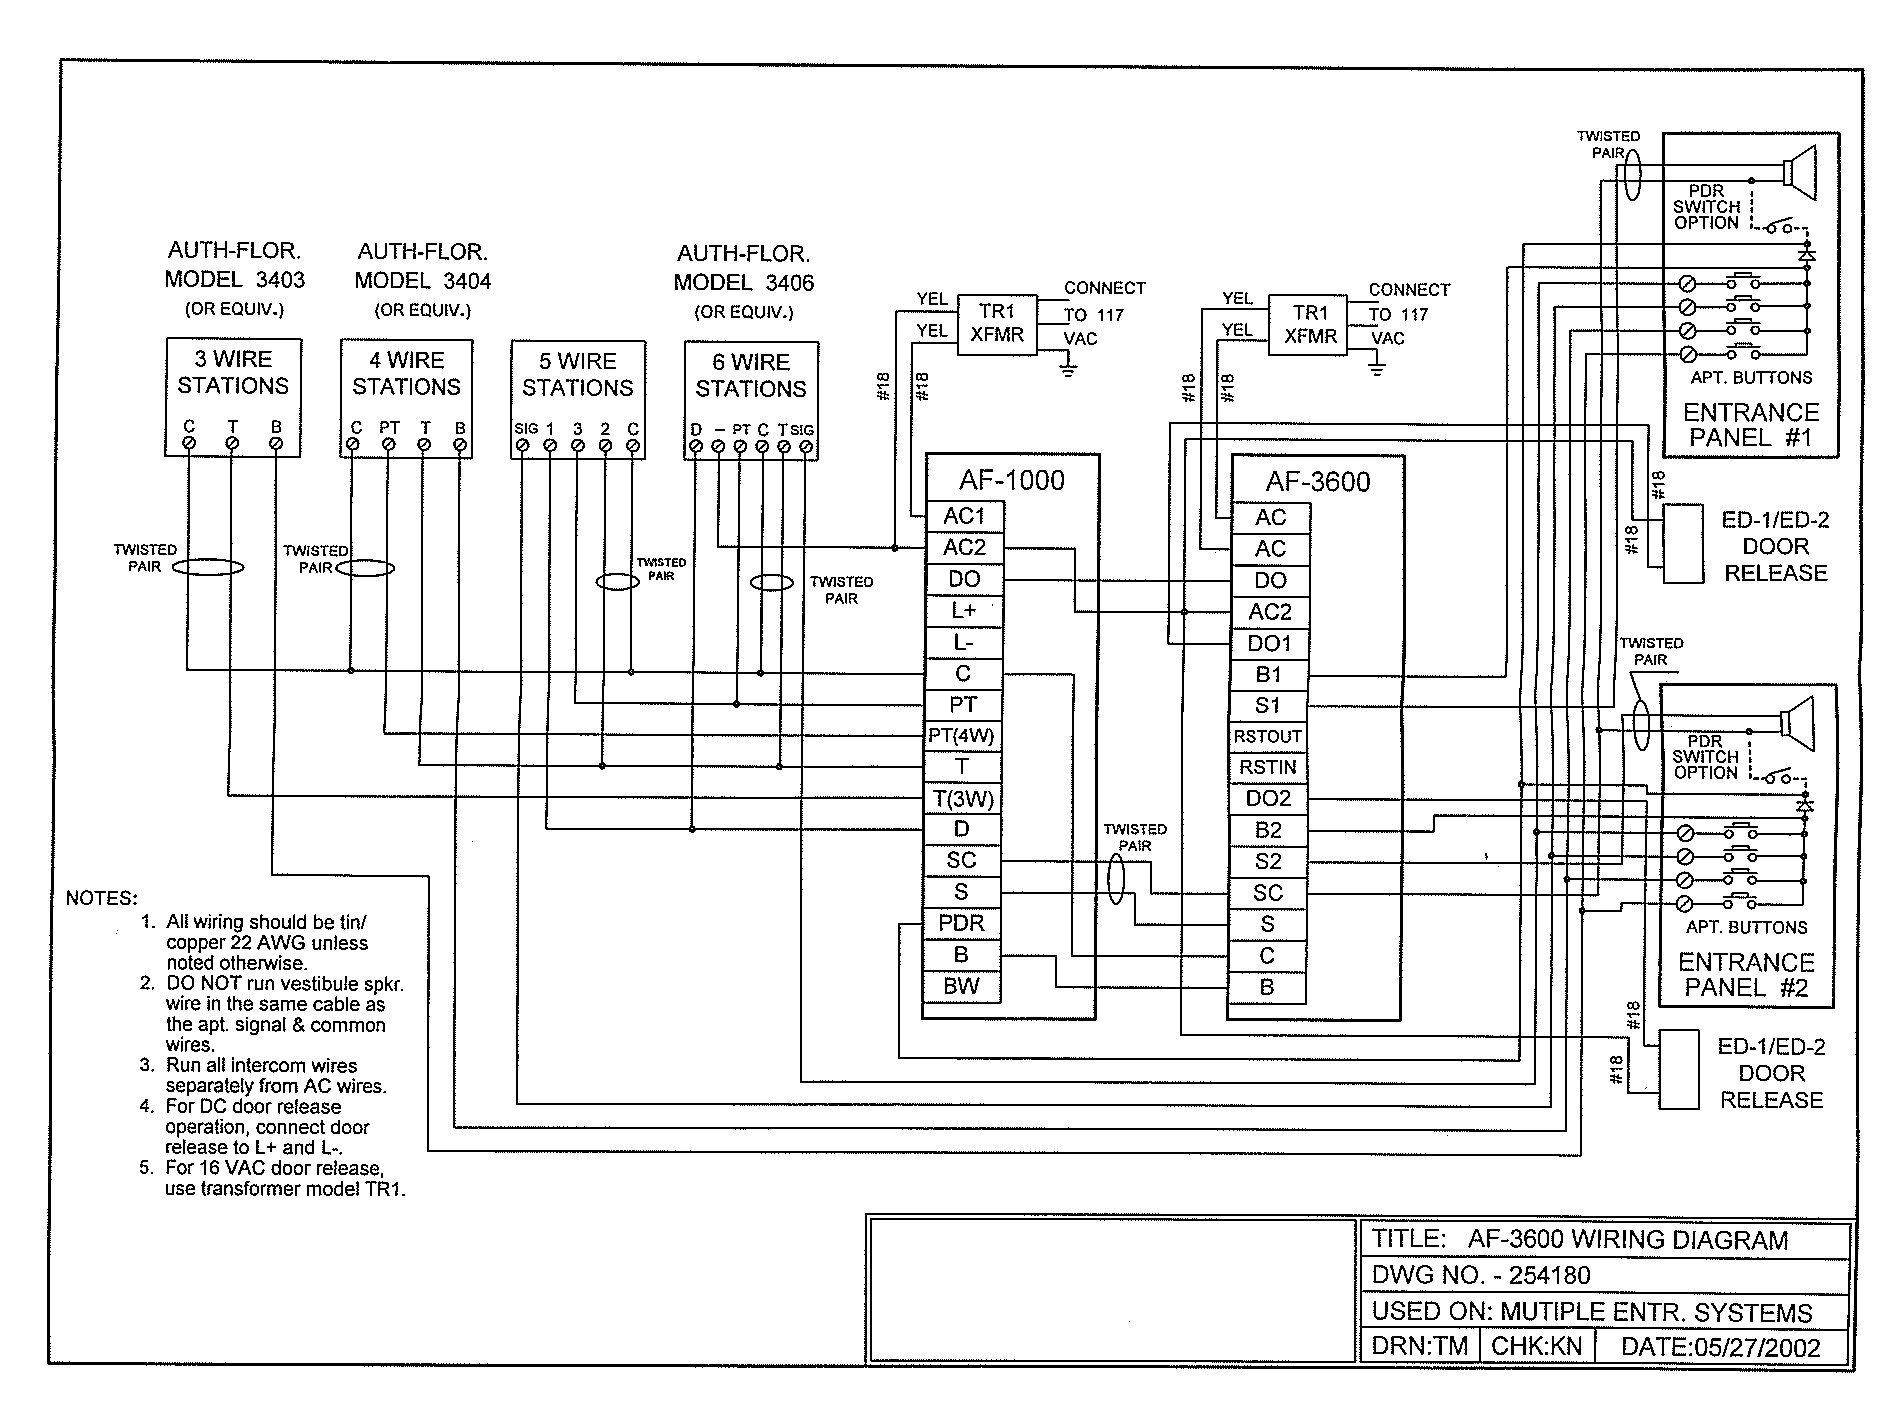 nurse call system wiring diagram pv for a piston station get free image about